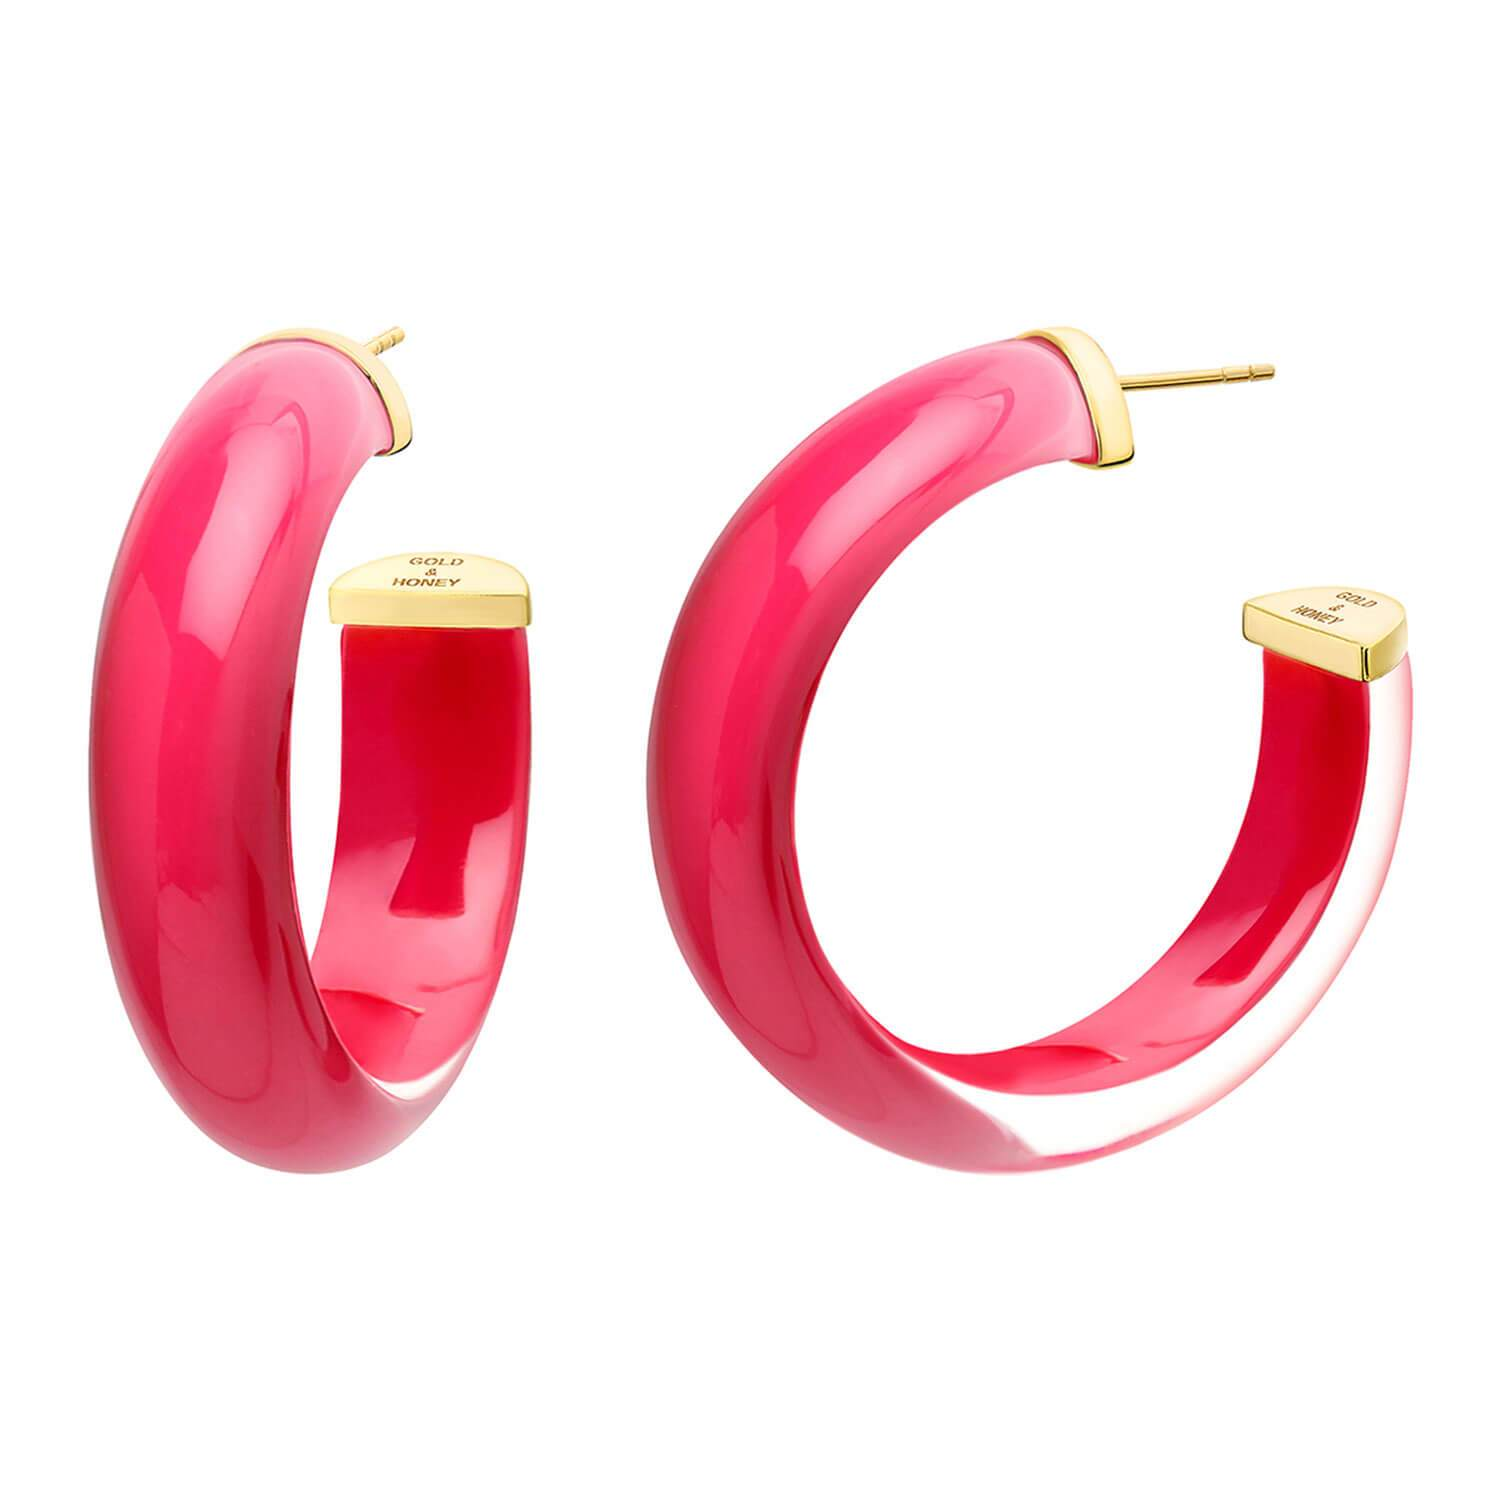 2 Inch Round Illusion Lucite Hoops